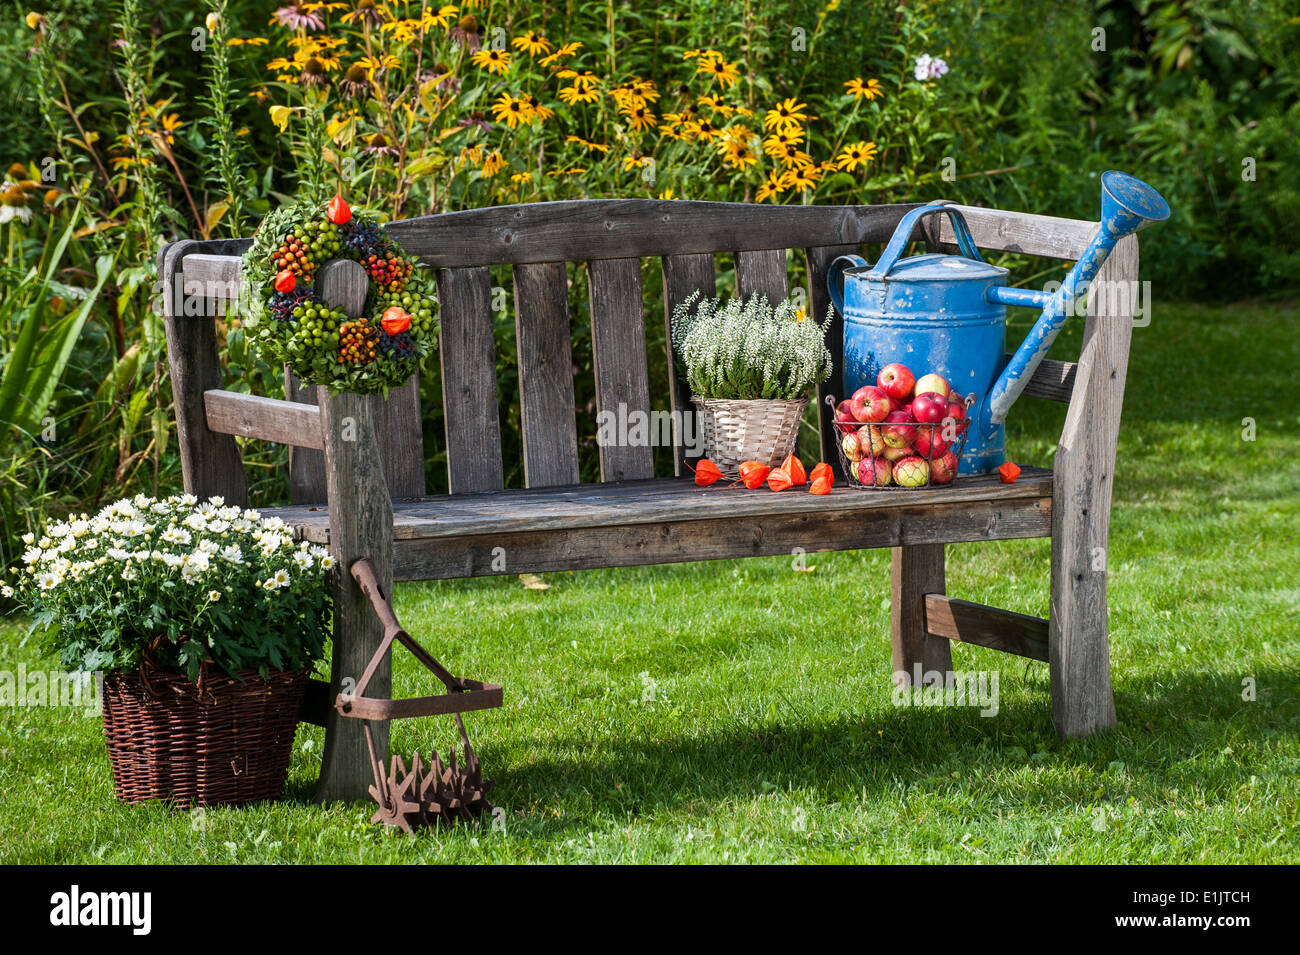 Garden Bench With Autumn Decoration Stock Photo 69870433 Alamy